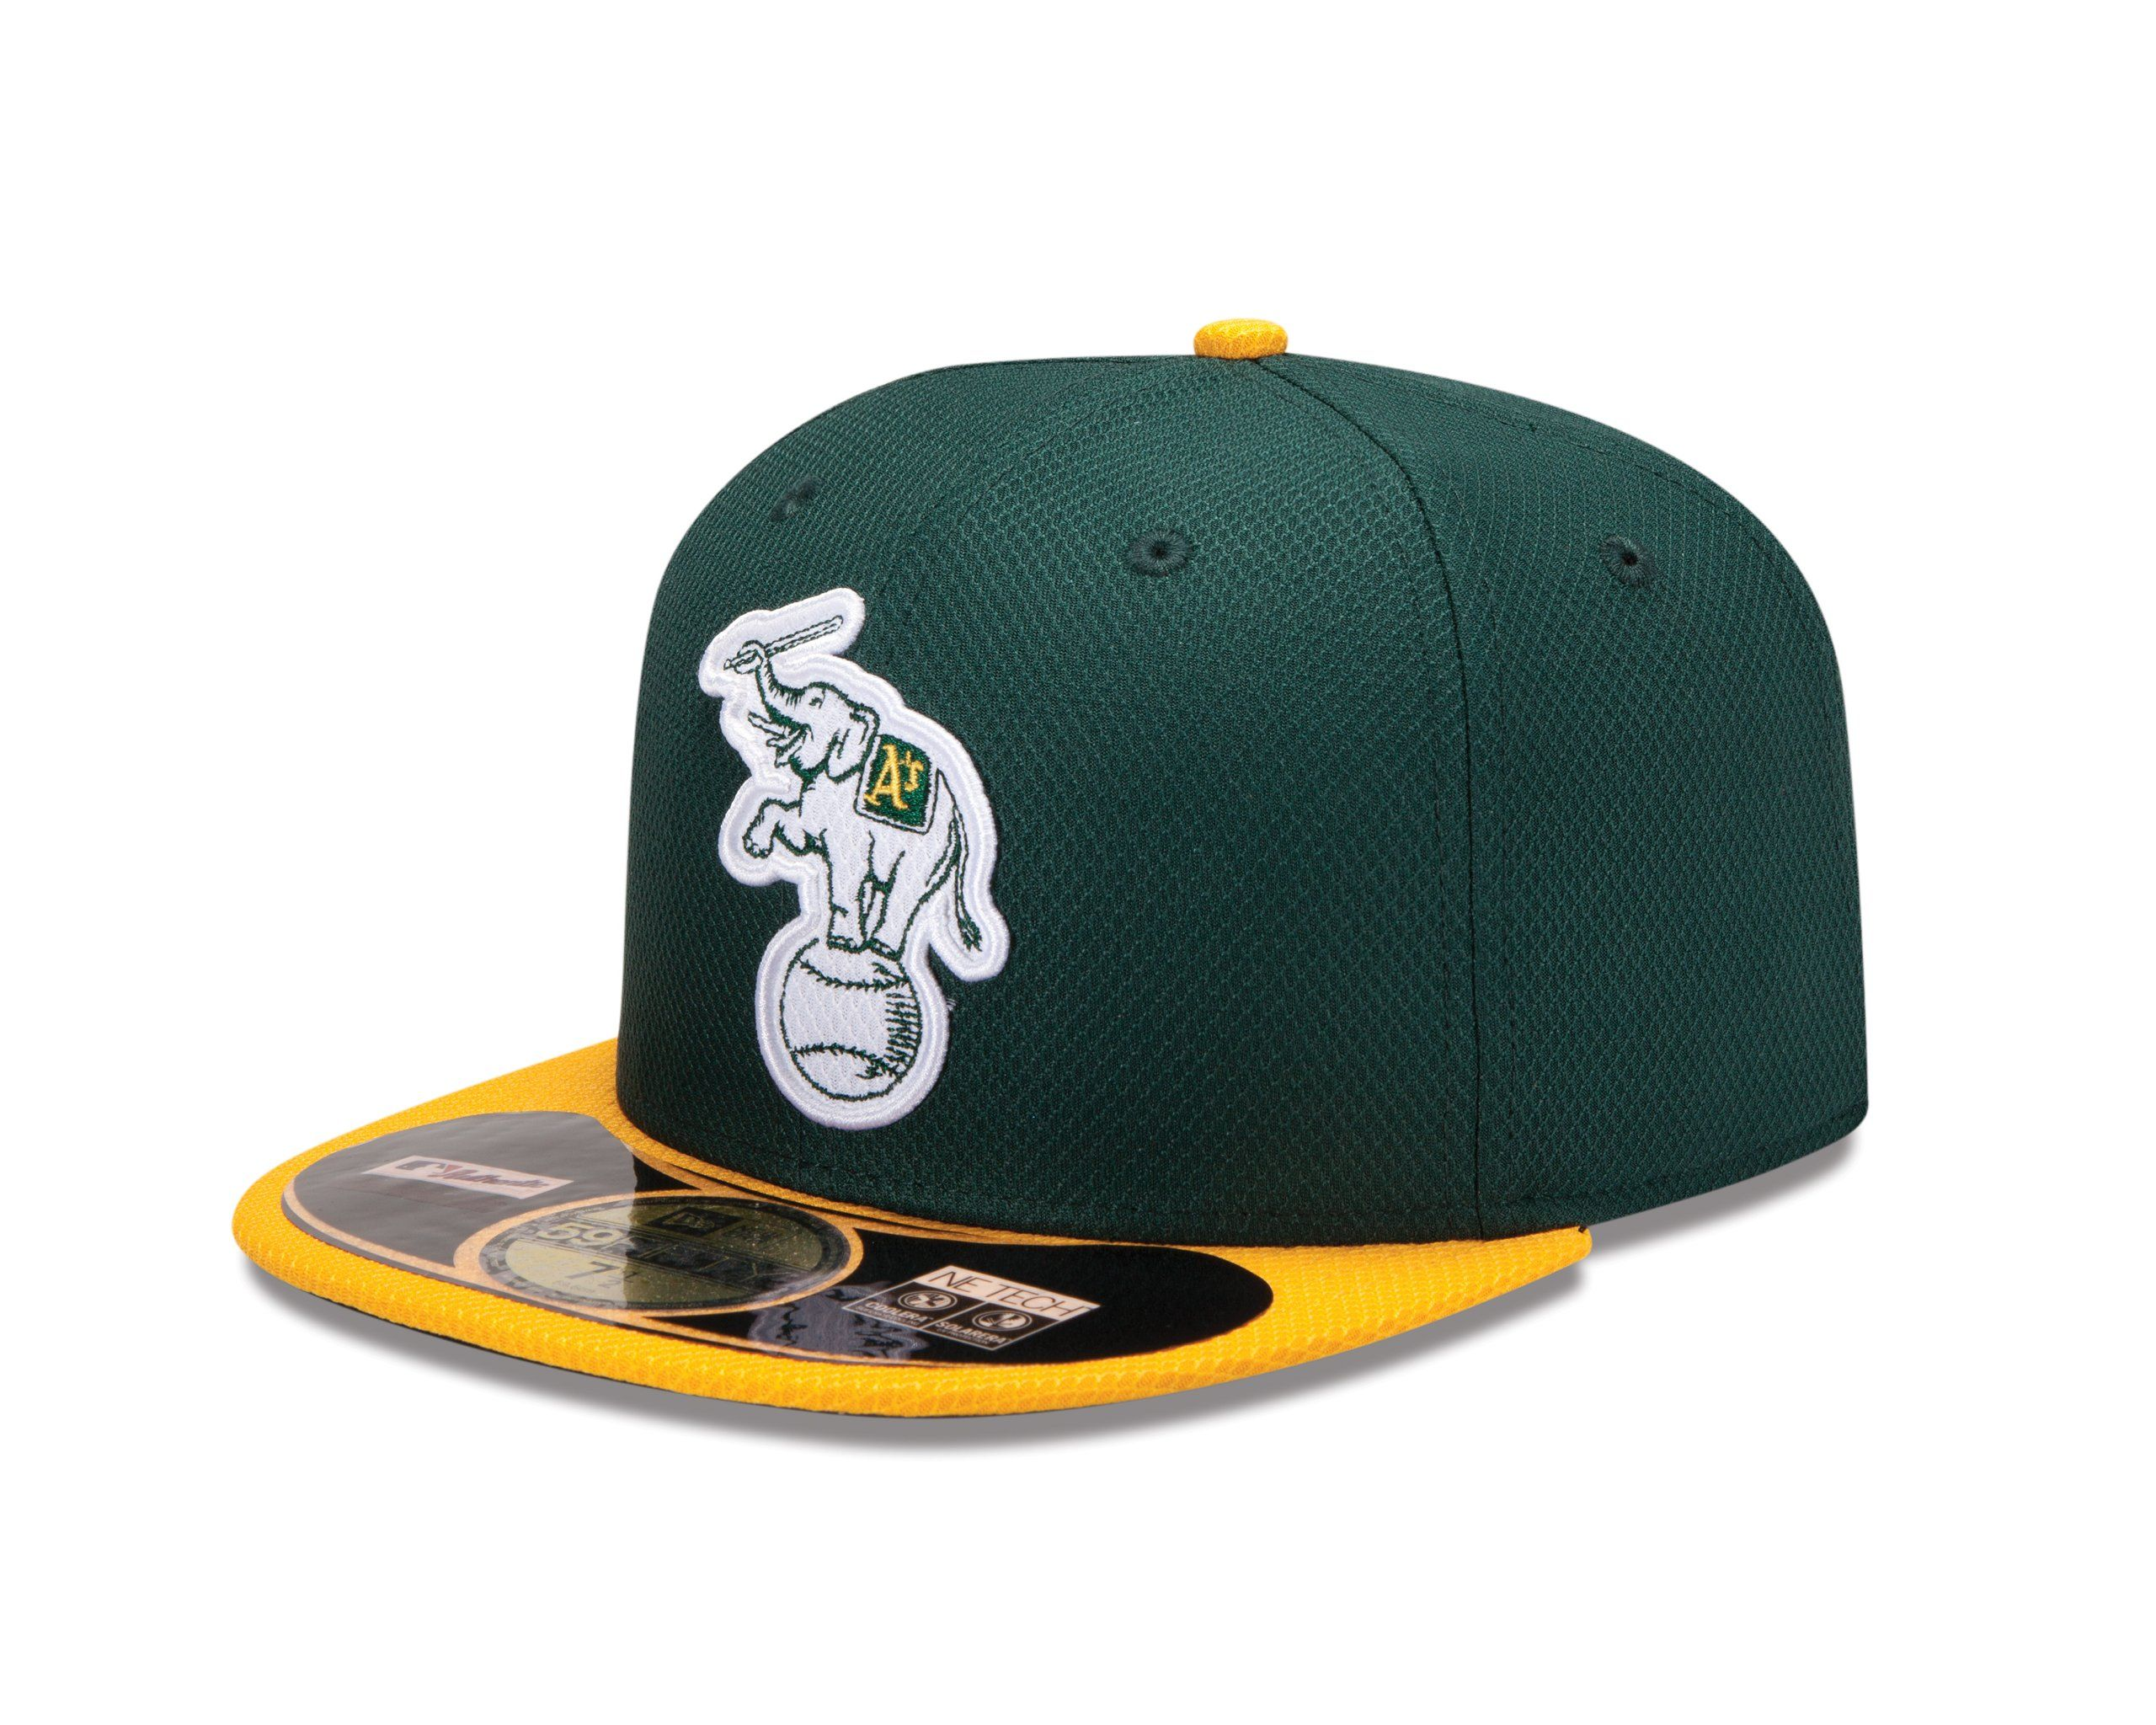 99b22d93 New Era 59Fifty Oakland A's batting practice hat, Stomper logo, diamond  print fabric